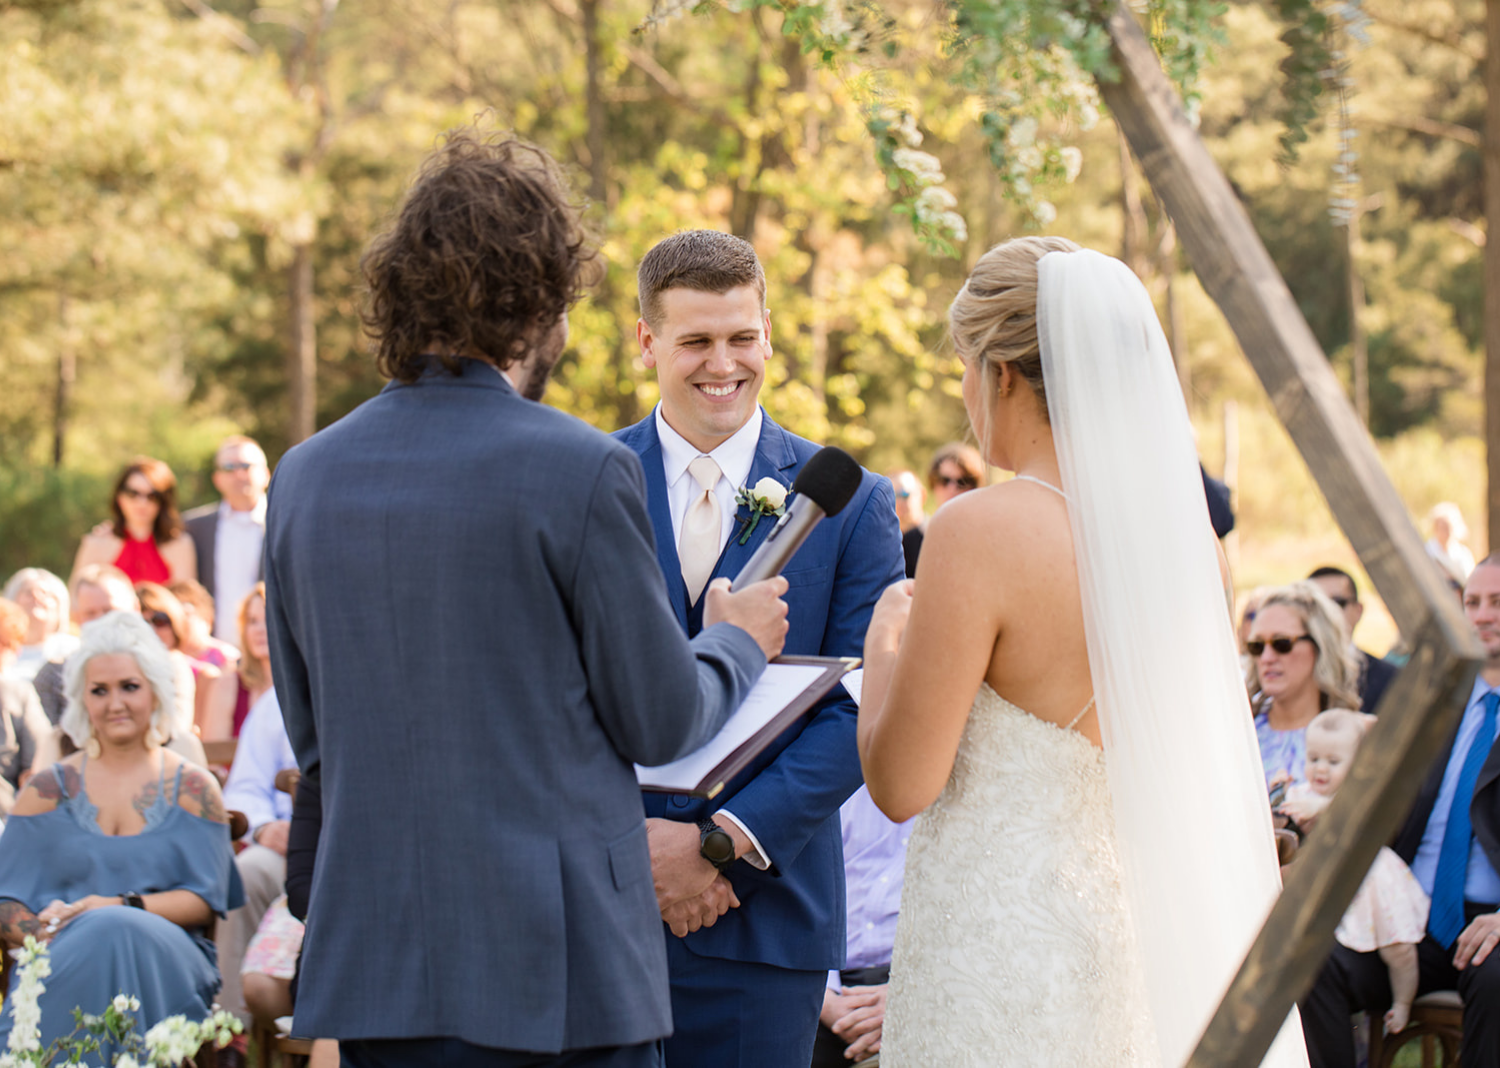 groom smiling as bride reads her wedding vows